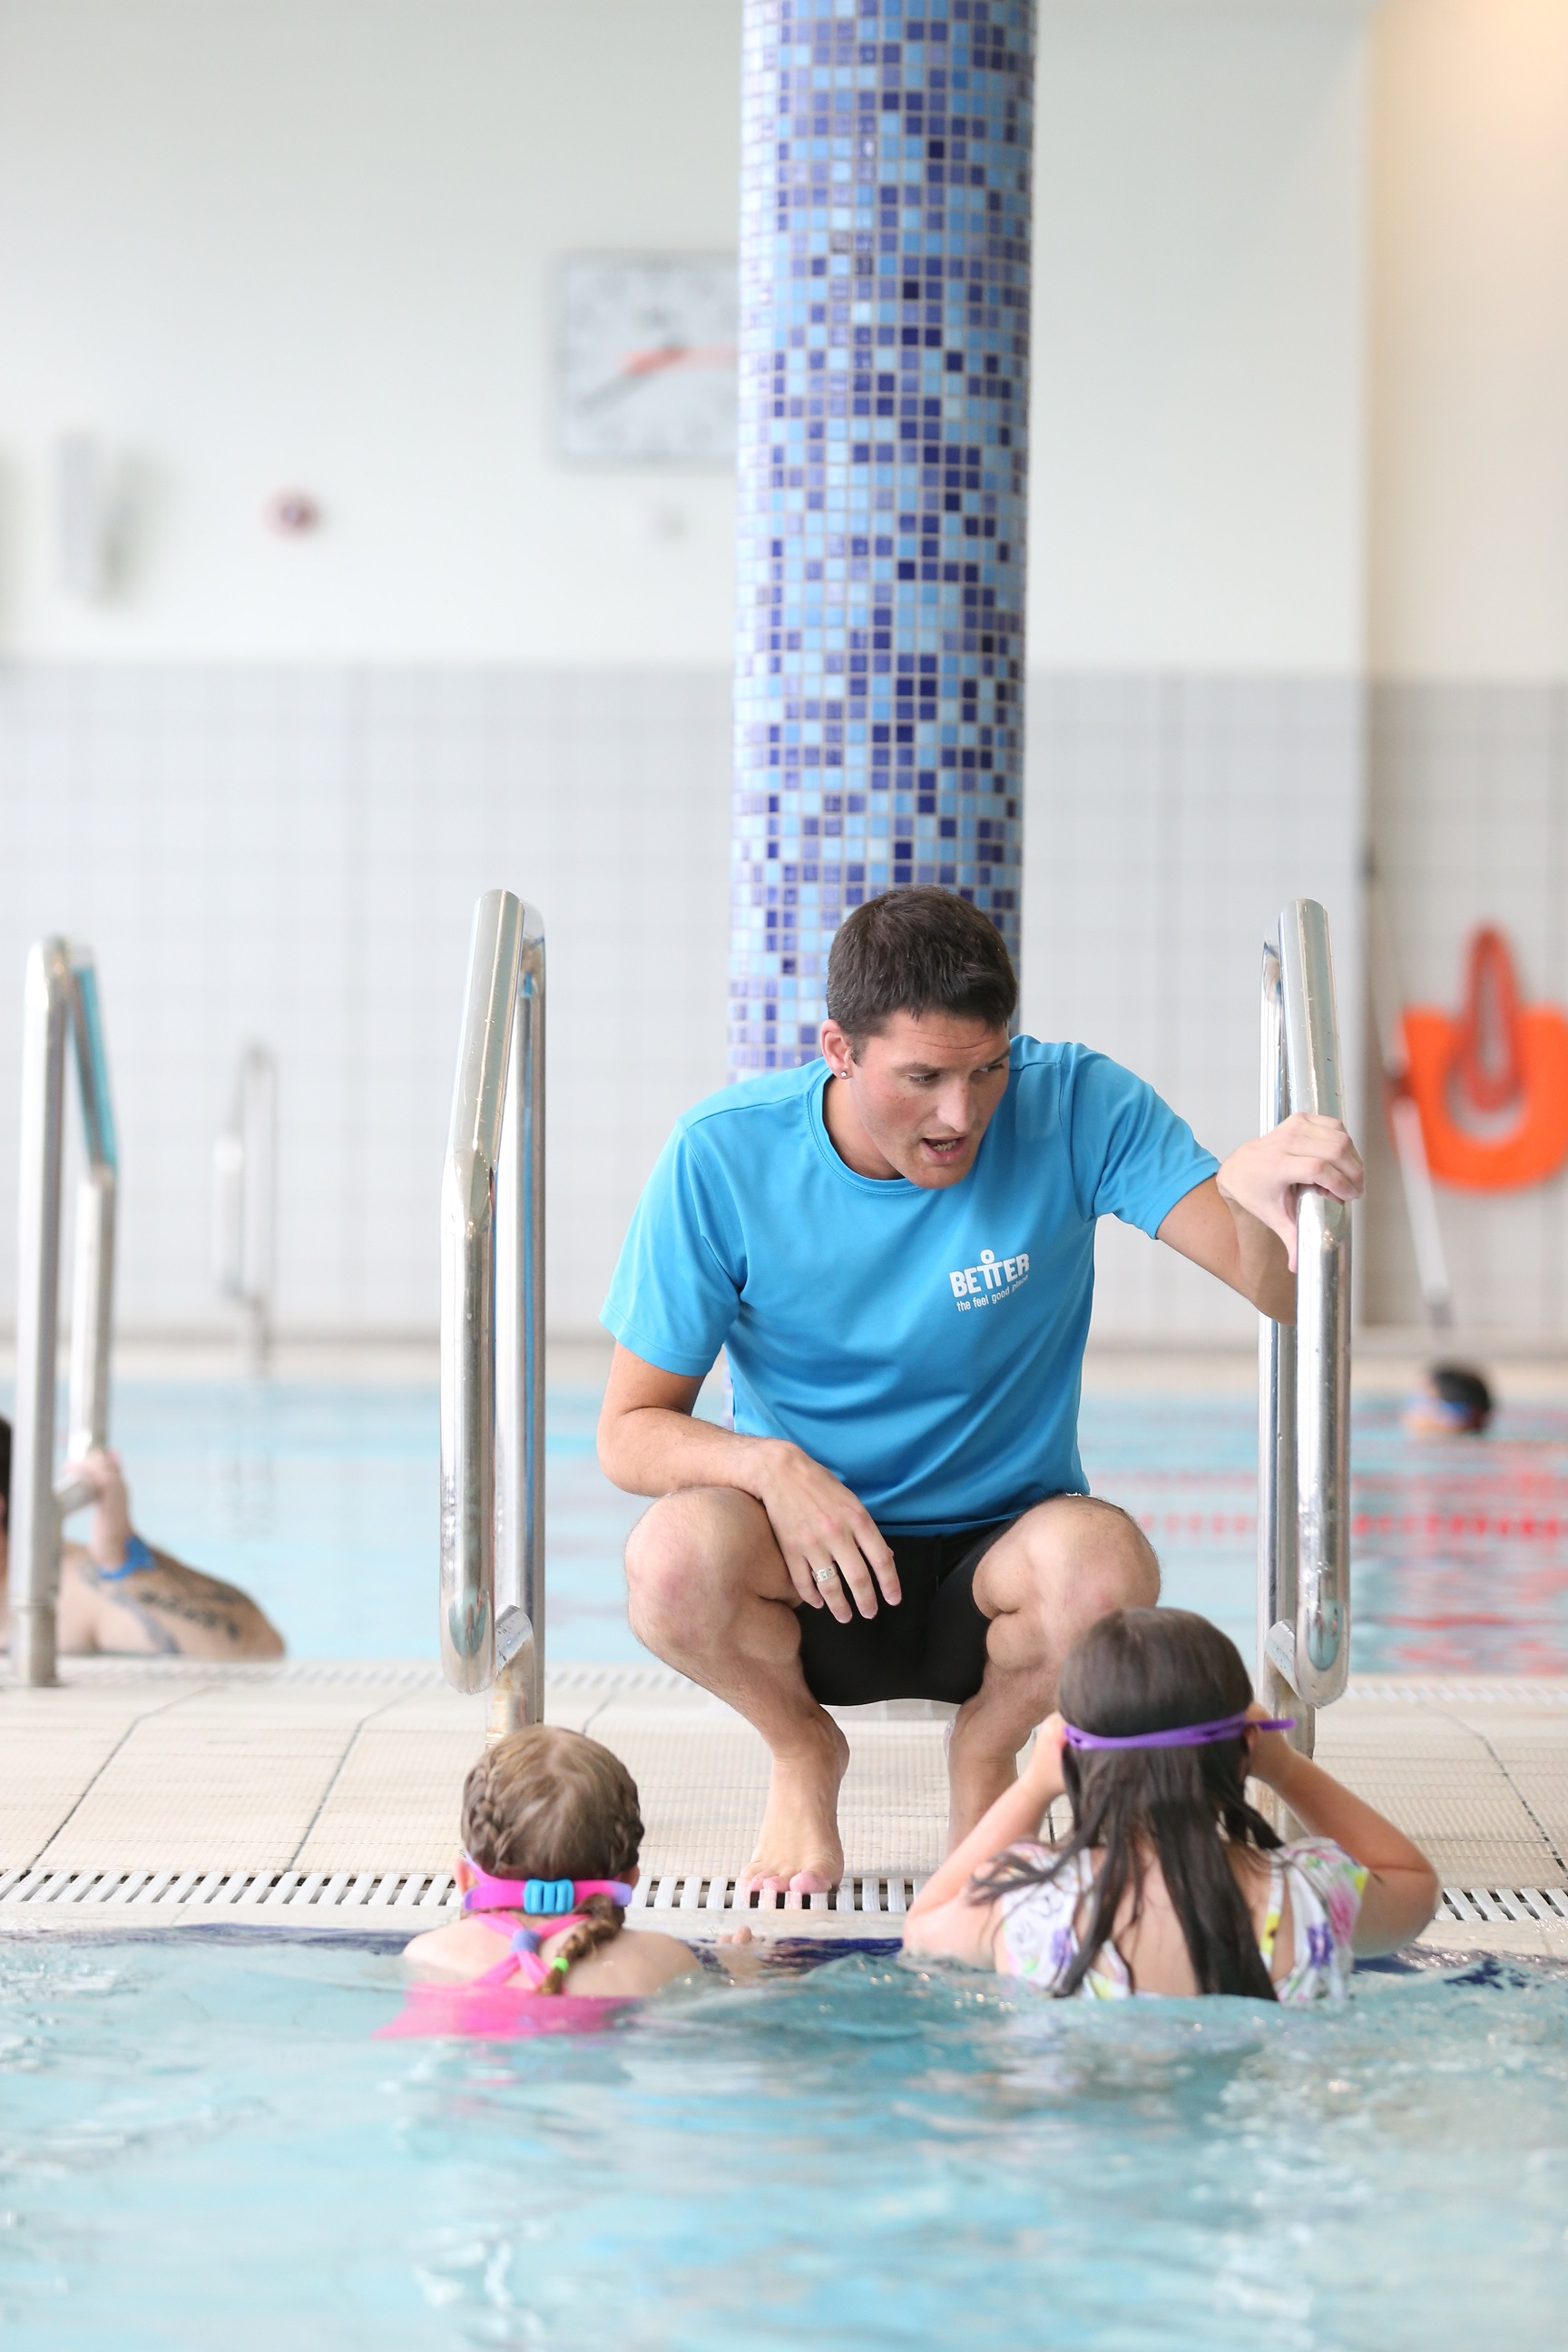 Better, which operates 7 swimming pools at leisure centres in Belfast is calling for nominations for Belfast's best swim teacher.